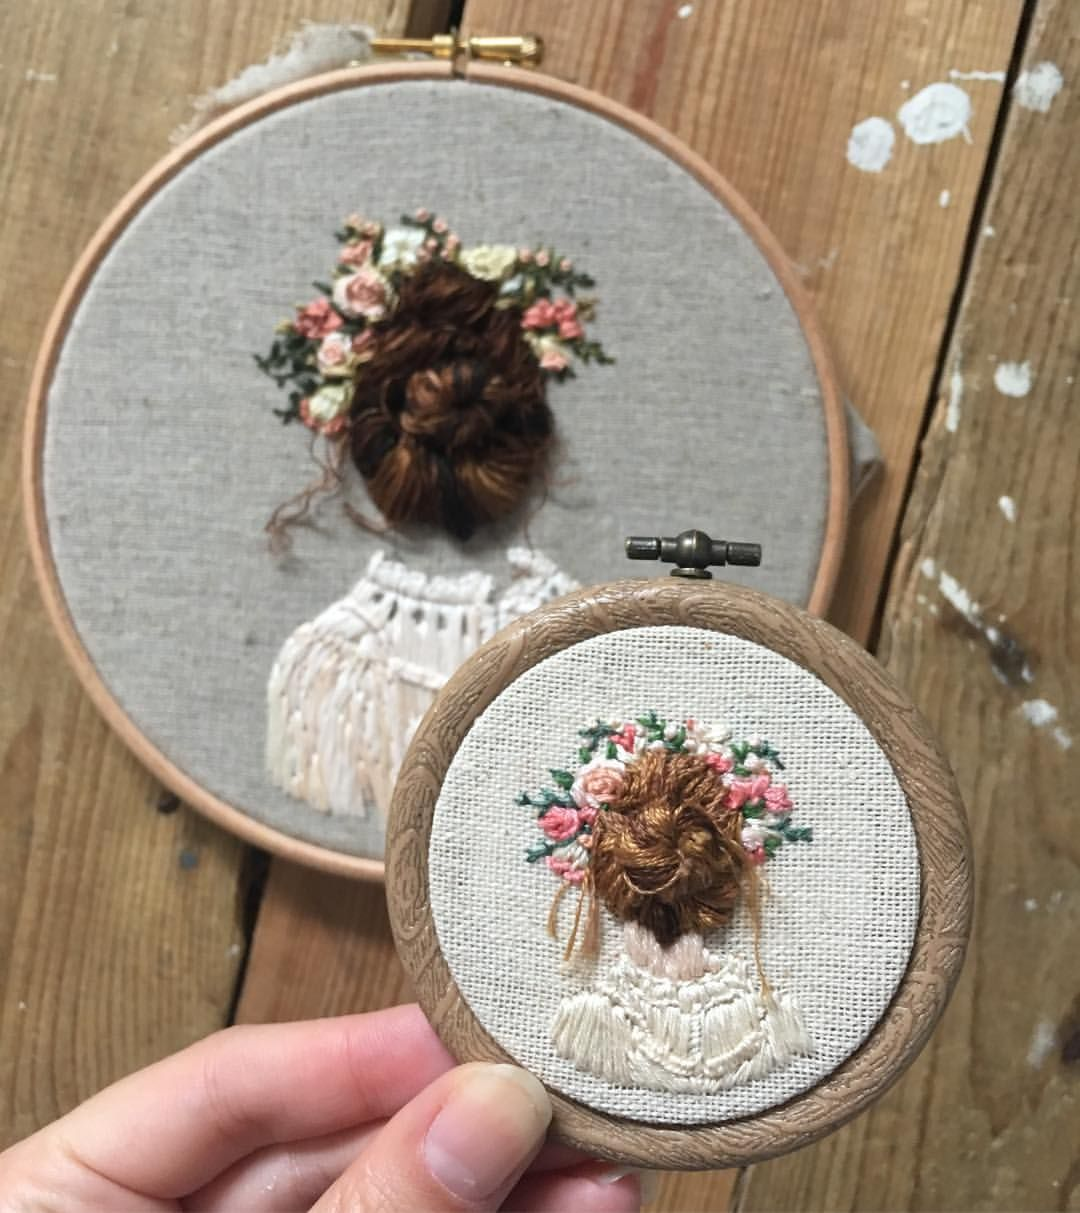 Embroidered Hair Bun Girls Hand Embroidered 3d Quirky Stitches